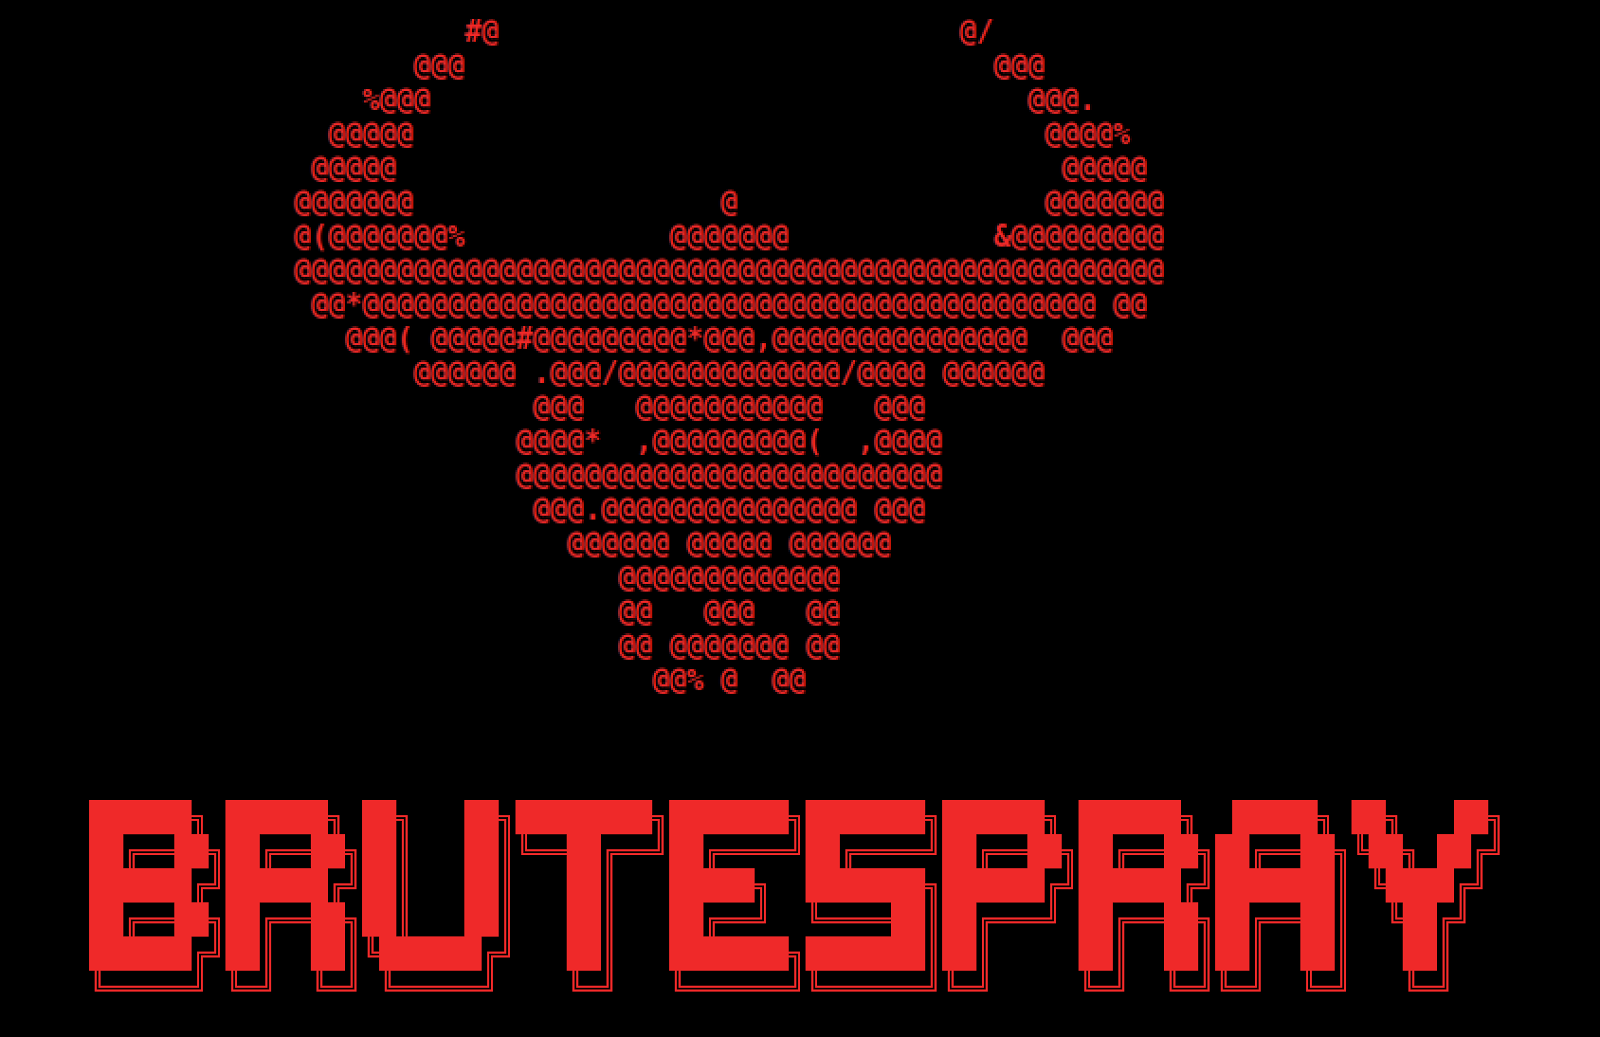 BruteSpray v1 6 0 - Brute-Forcing from Nmap output (Automatically